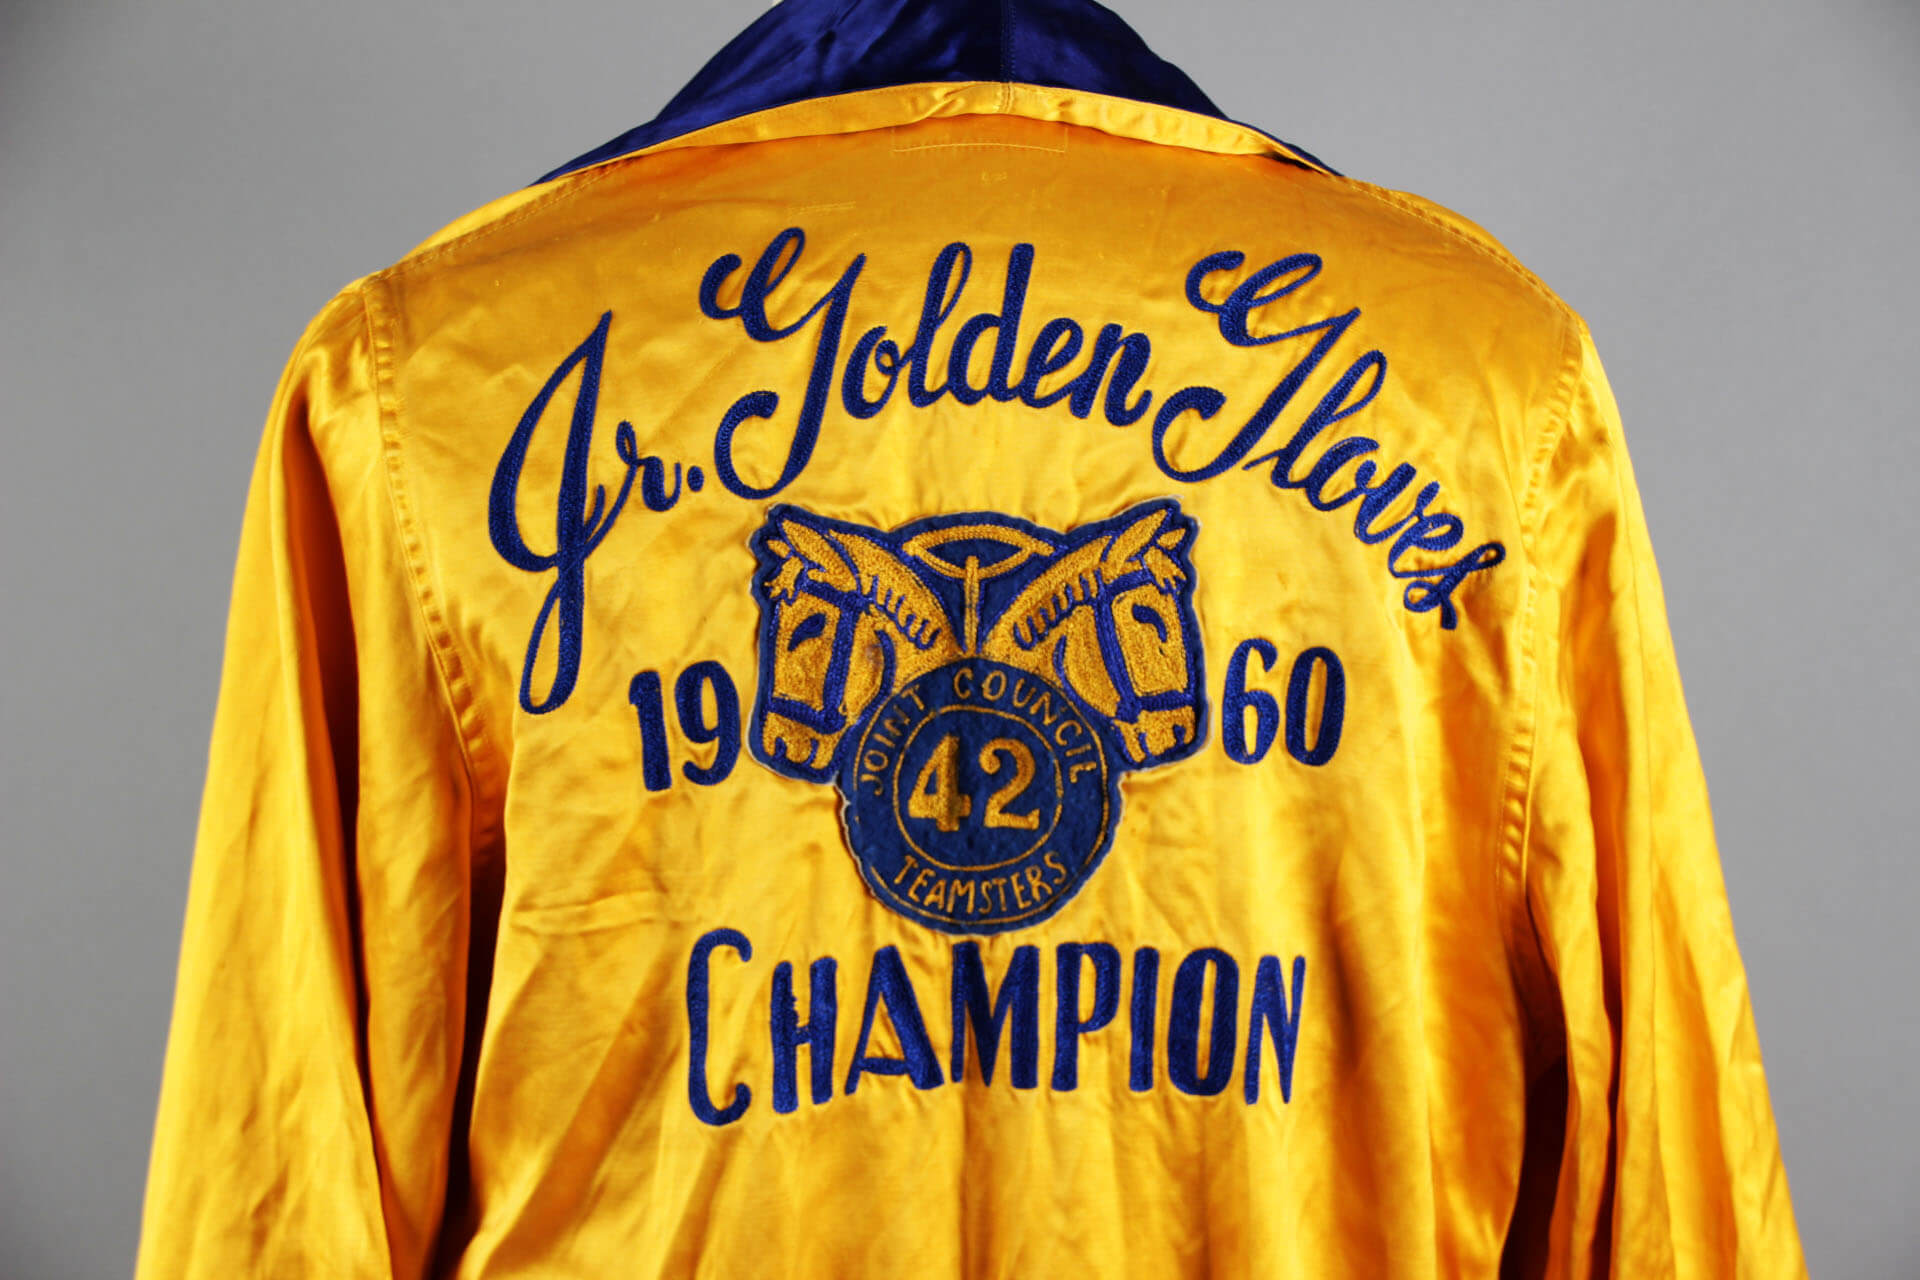 Jerry Quarry Personal Worn 1960 Junior Golden Gloves Championship Boxing Robe - COA Family Letter